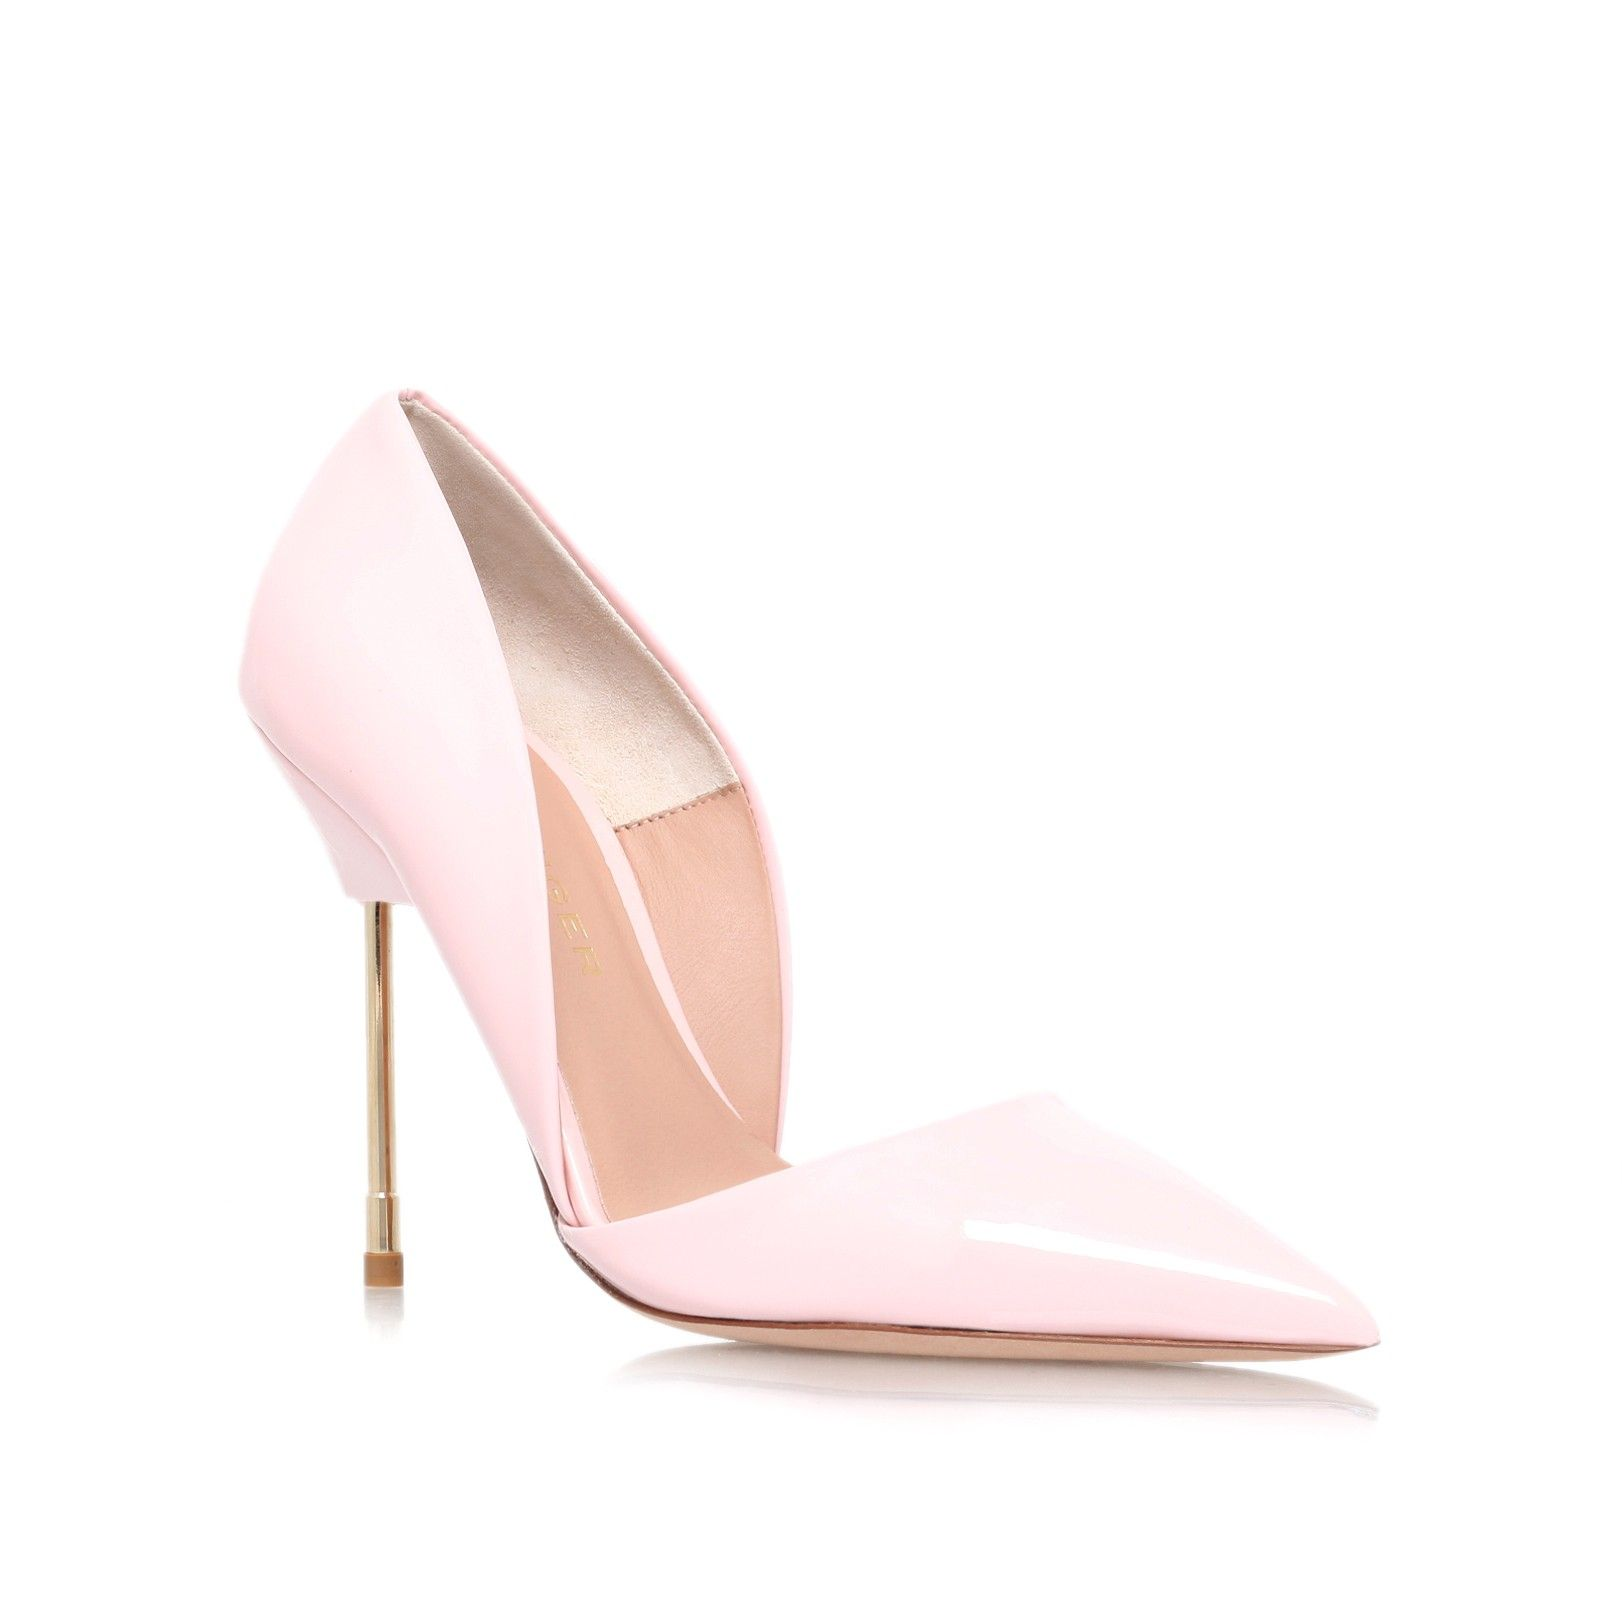 bond pink high heel court shoes from Kurt Geiger London